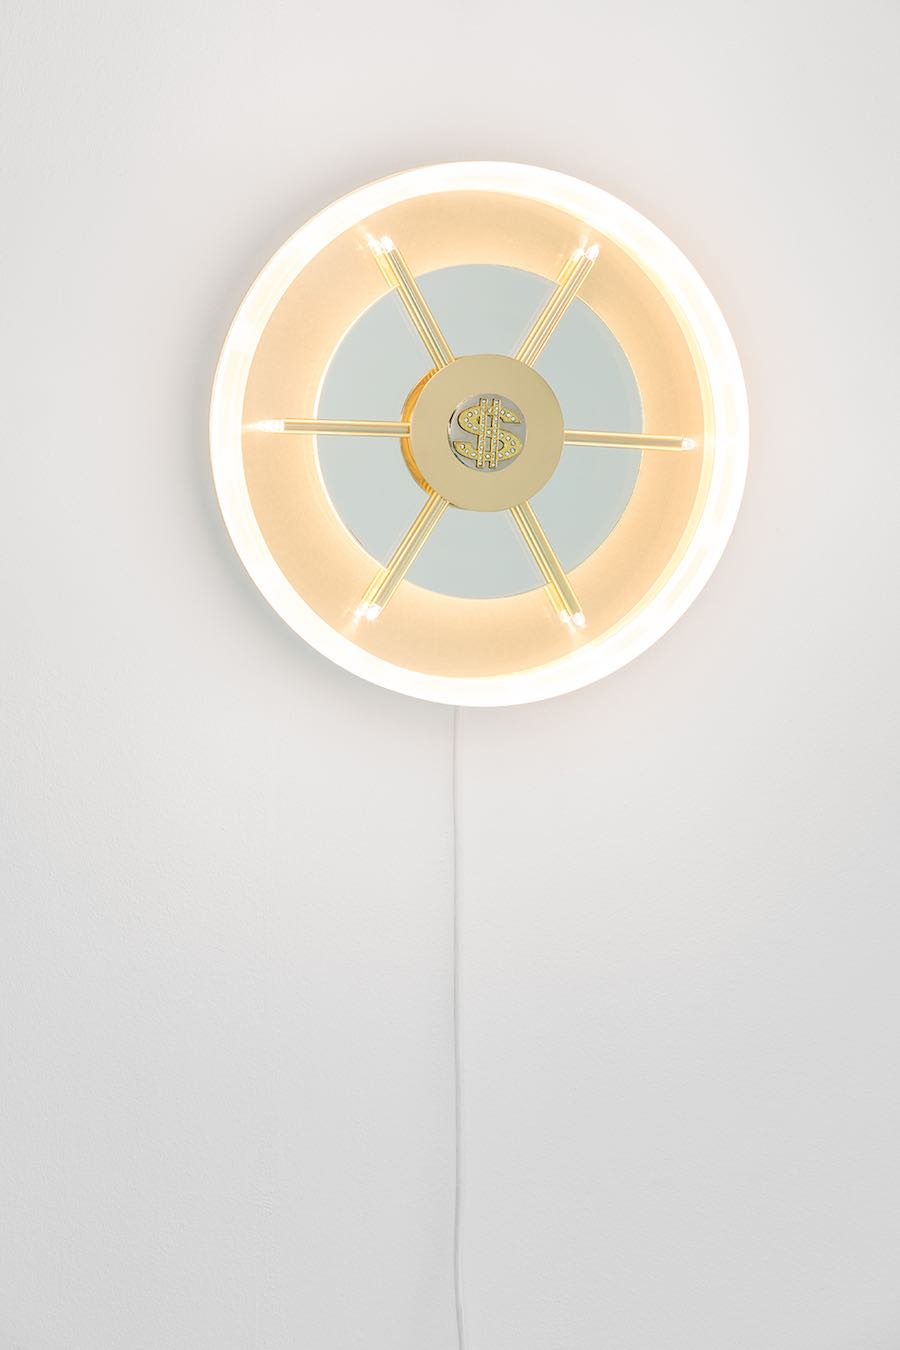 GOD exhibition, Caveau wall lamp - Photo by Atelier Biagetti.